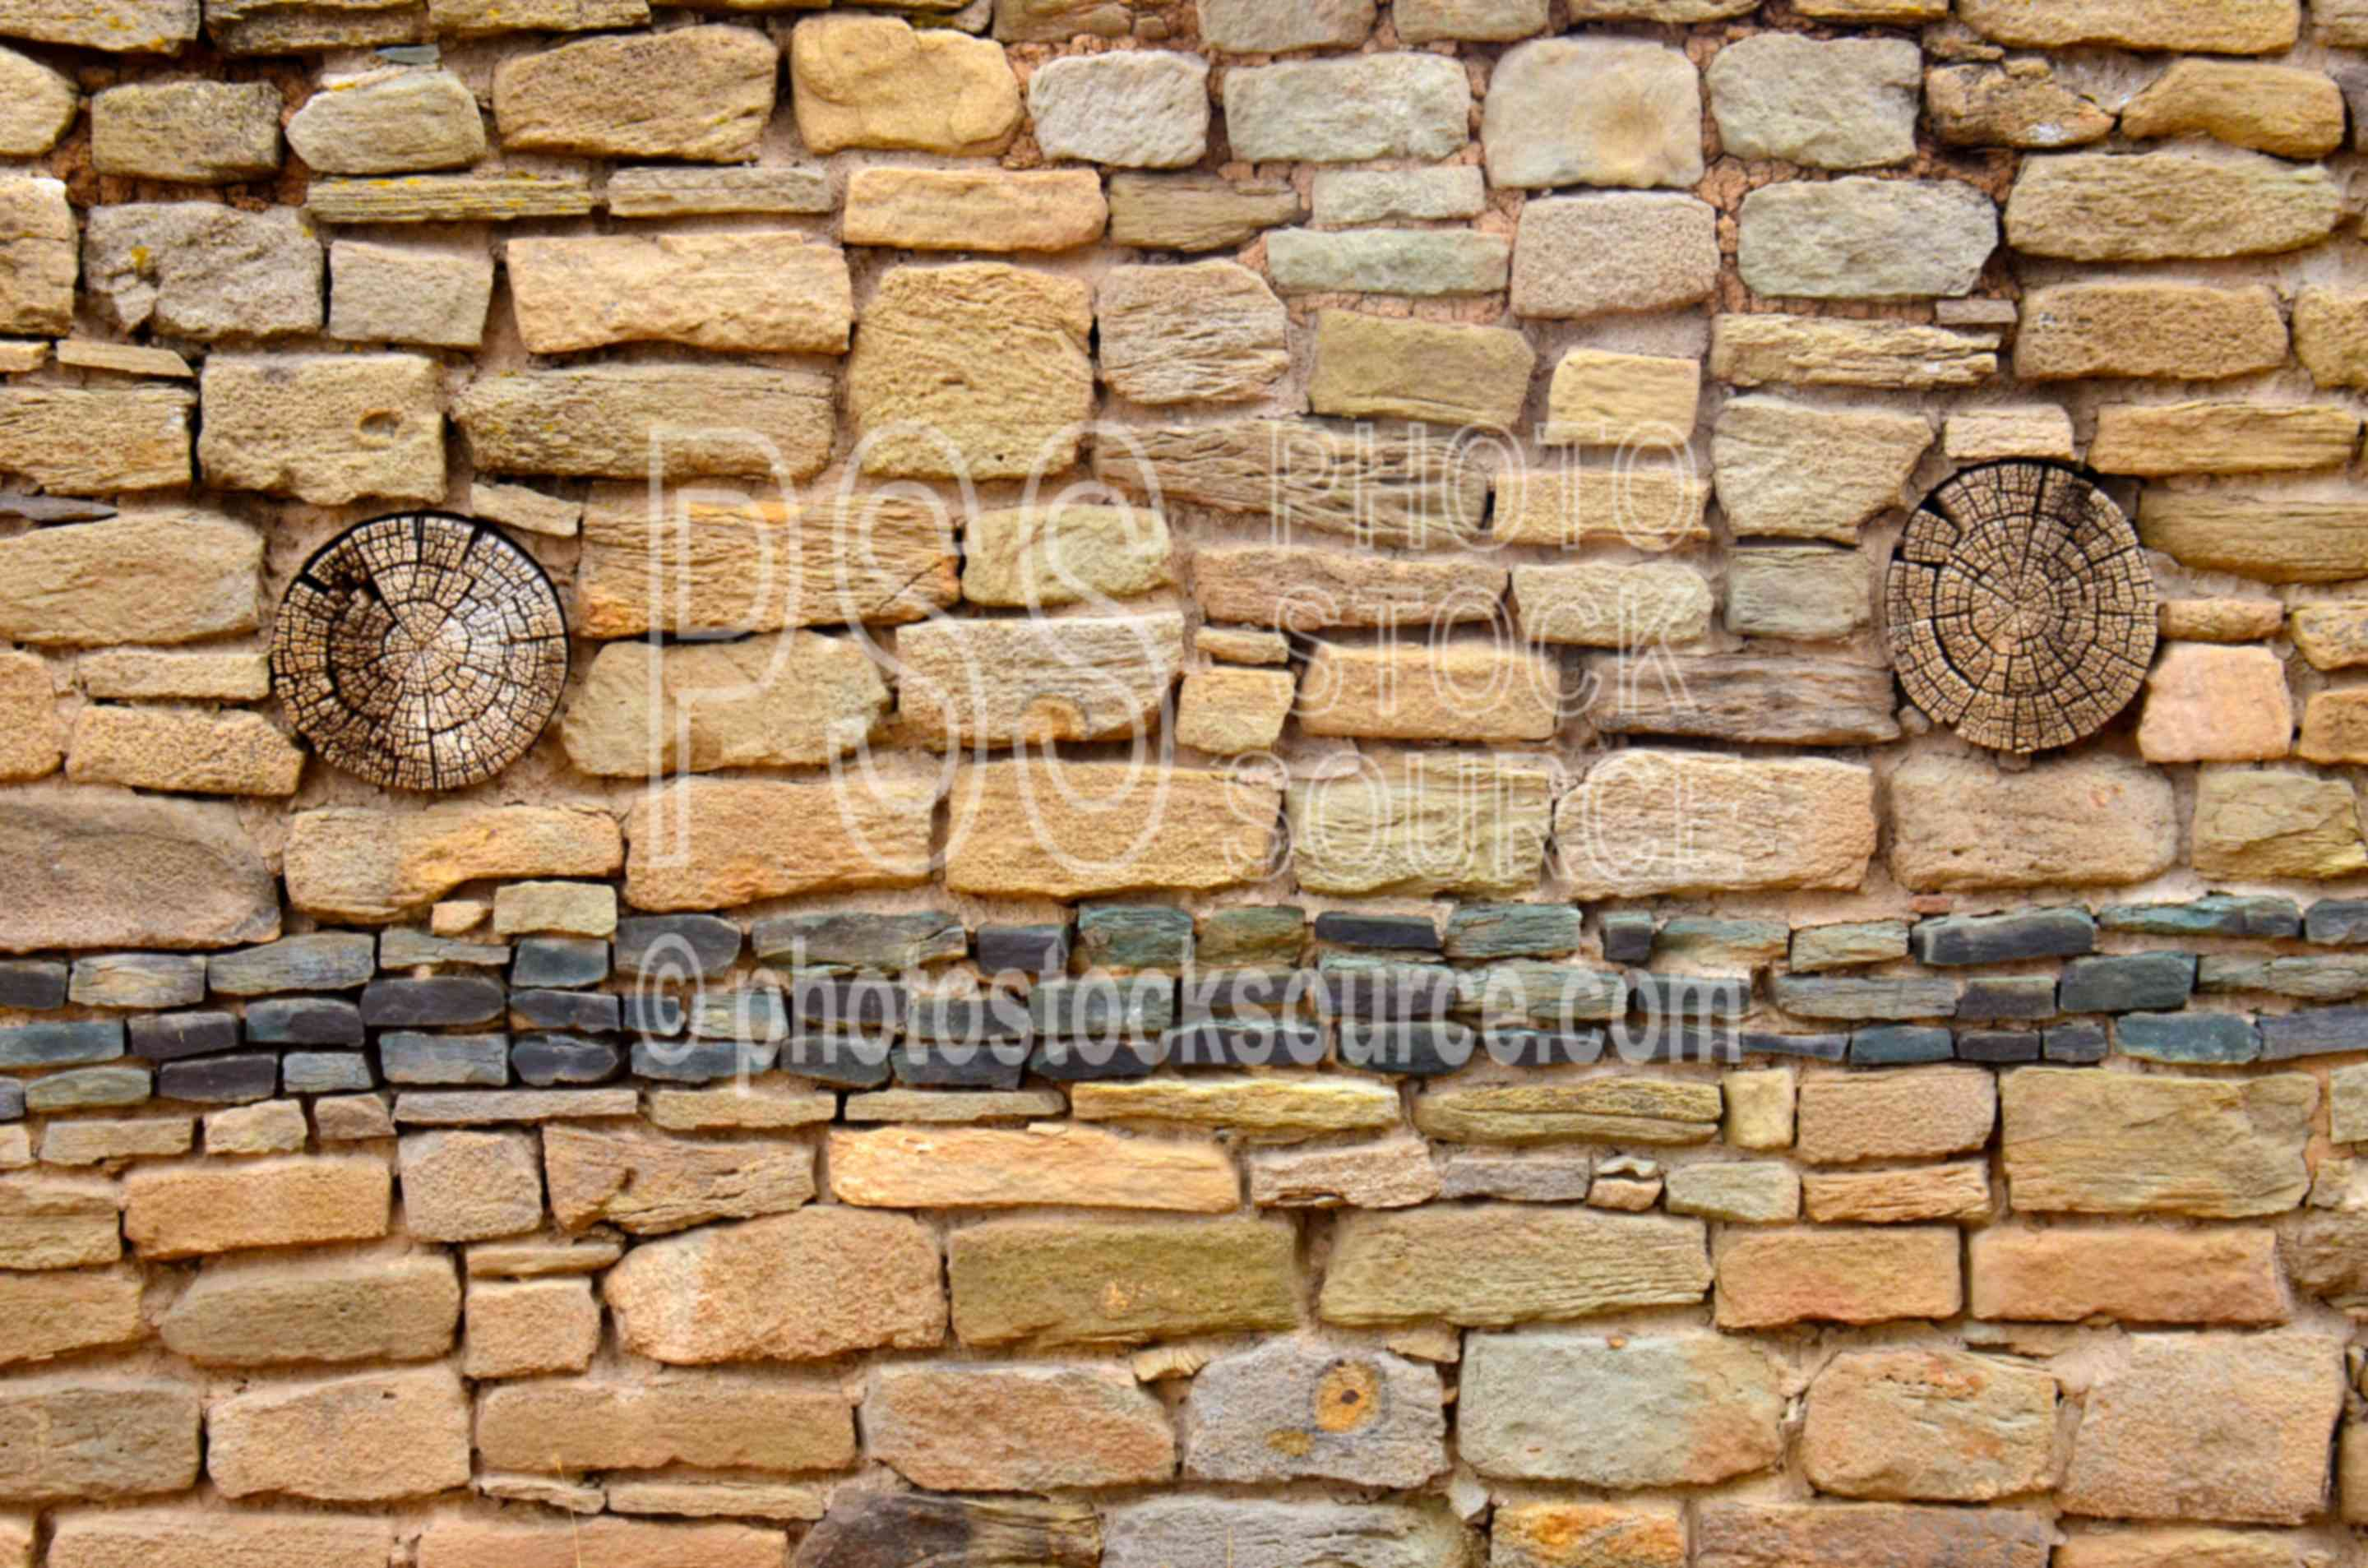 Aztec Ruins Wall Bricks,native americans,walls,ruin,ancient puebloans,room